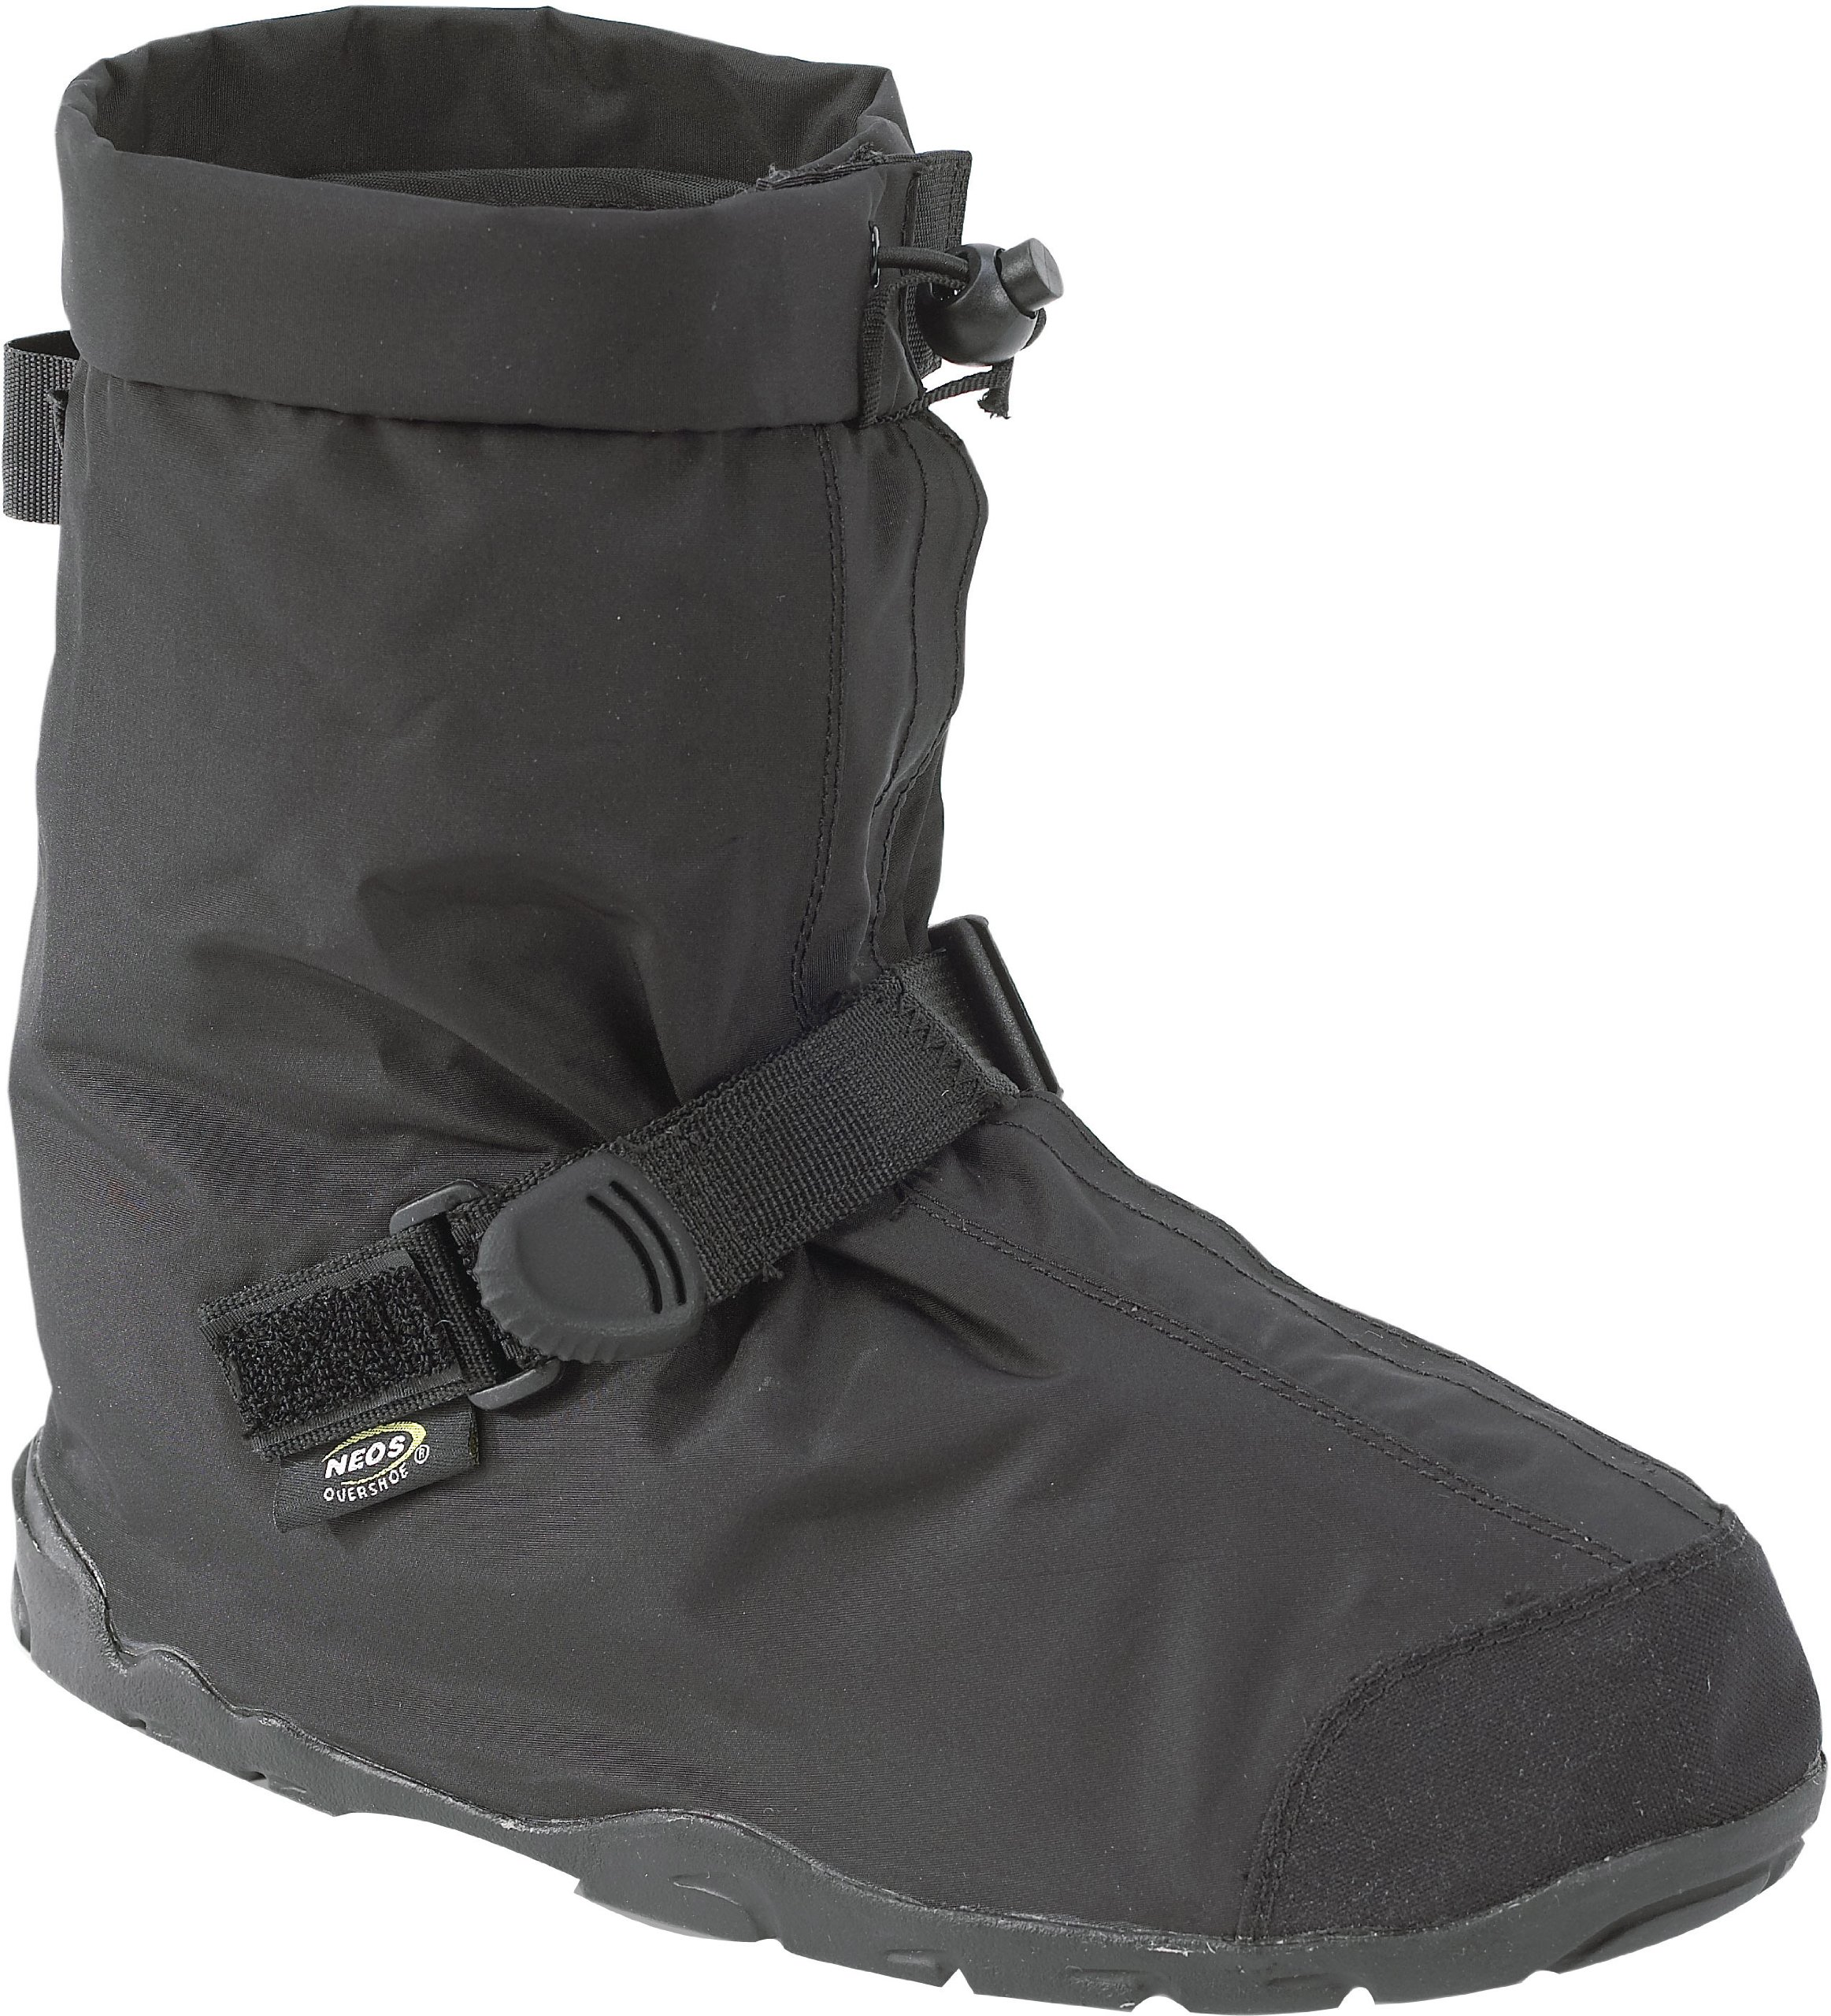 NEOS 11'' Villager Nylon All Season Waterproof Overshoes (VIS1)